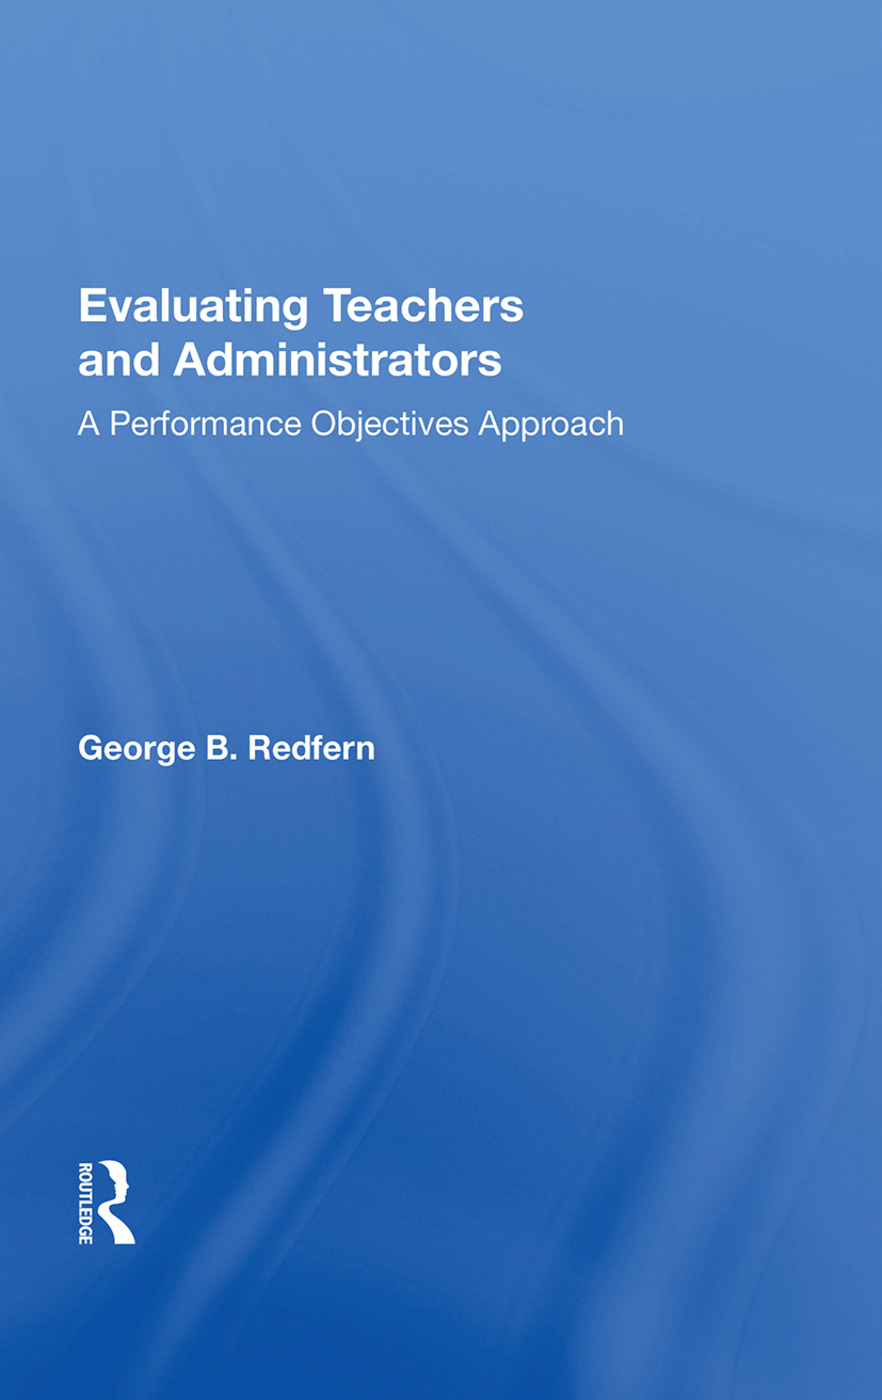 Evaluating Teachers And Administrators: A Performance Objectives Approach book cover